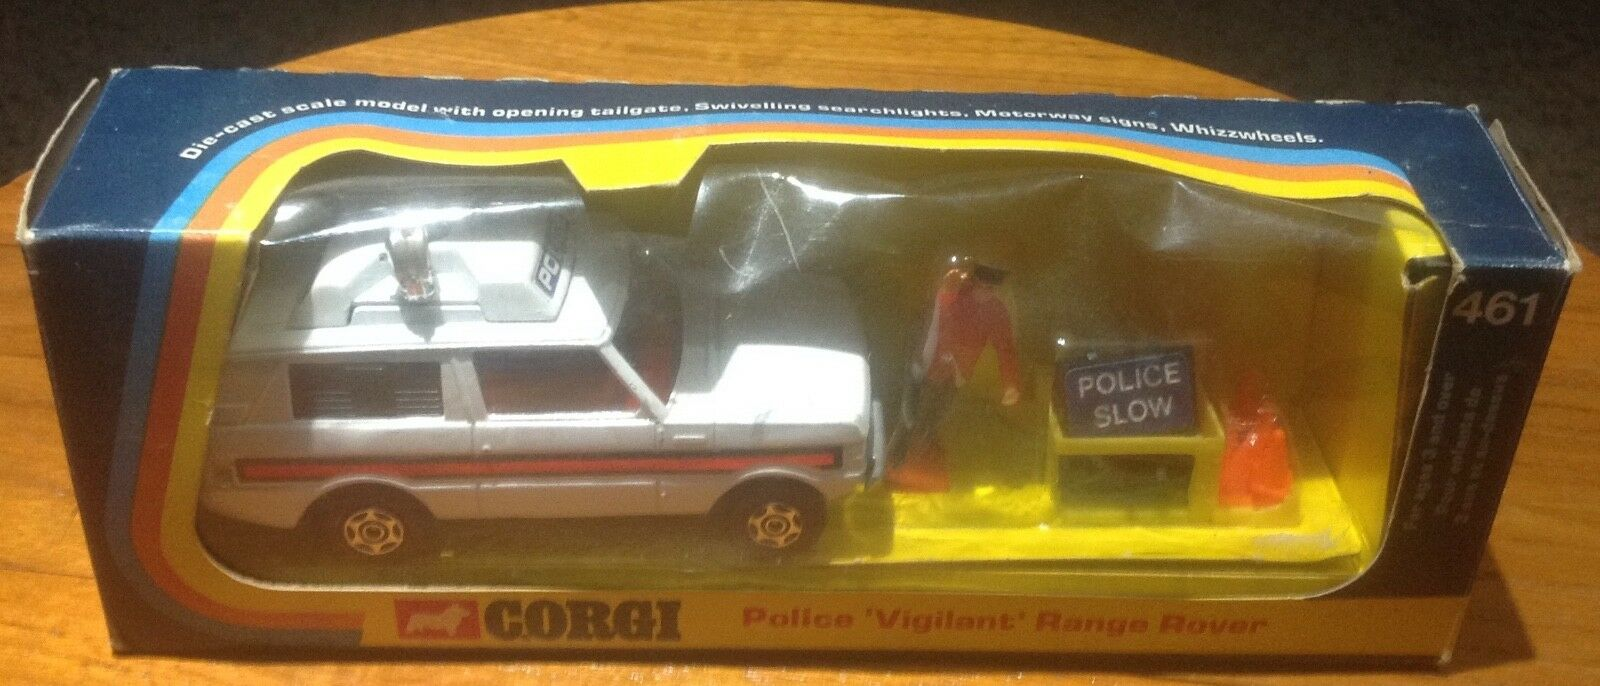 Corgi 461 Police Range Rover Getting Rare To Find Original Box.